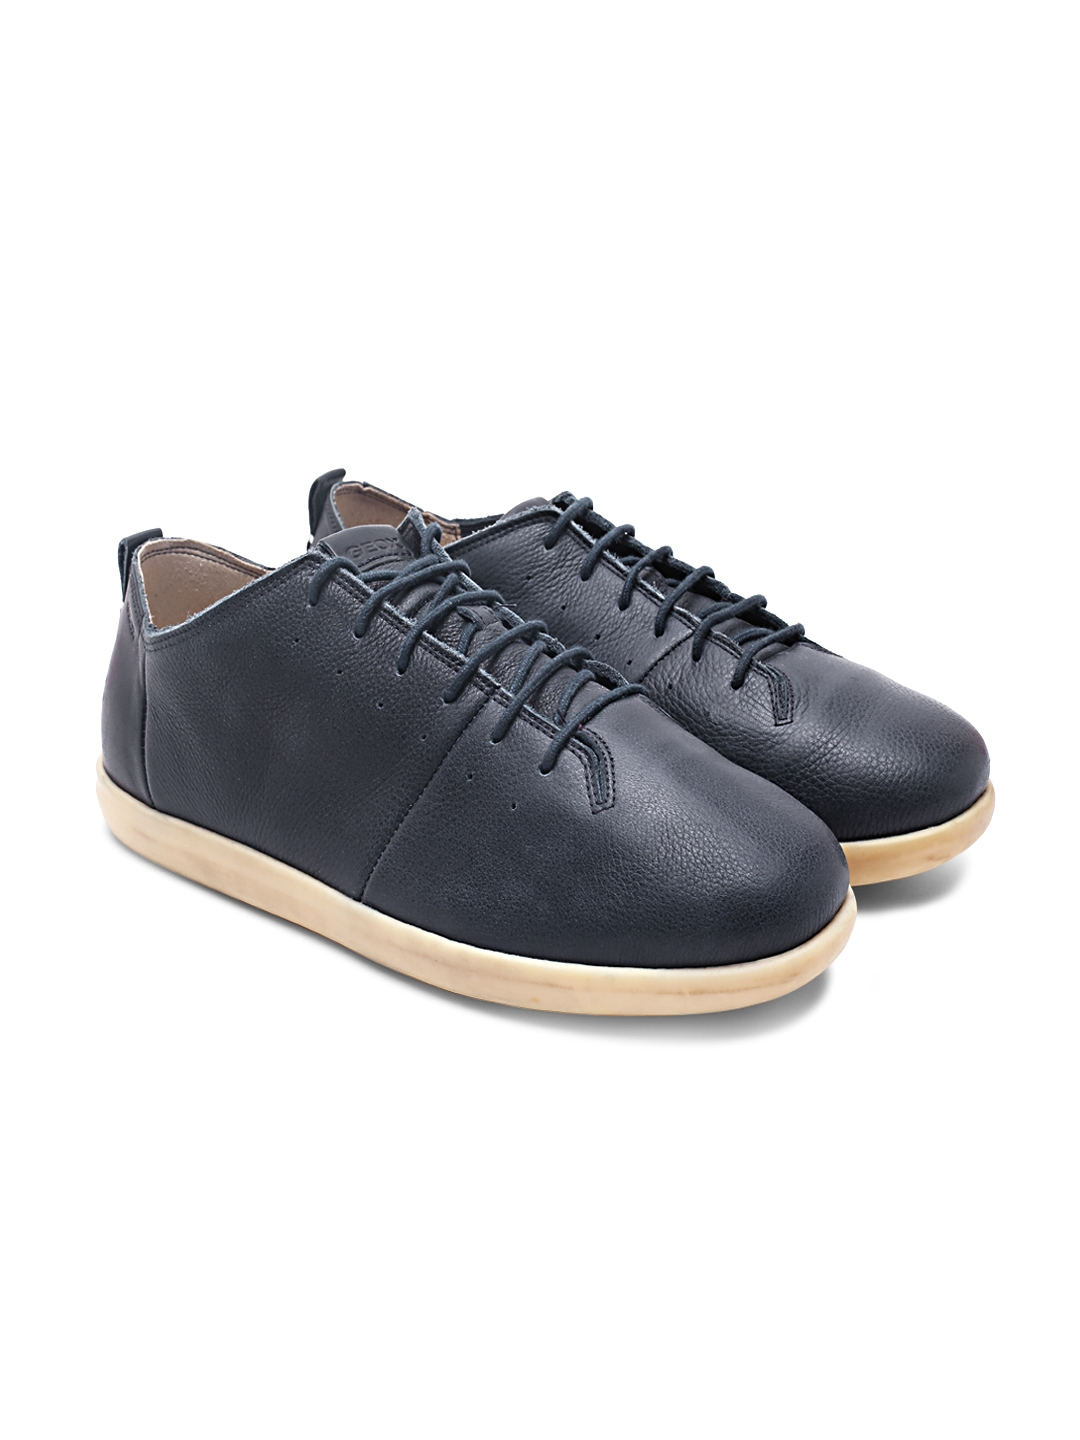 320c038140 Buy Geox Men Navy Blue Solid Leather Sneakers - Casual Shoes for Men ...